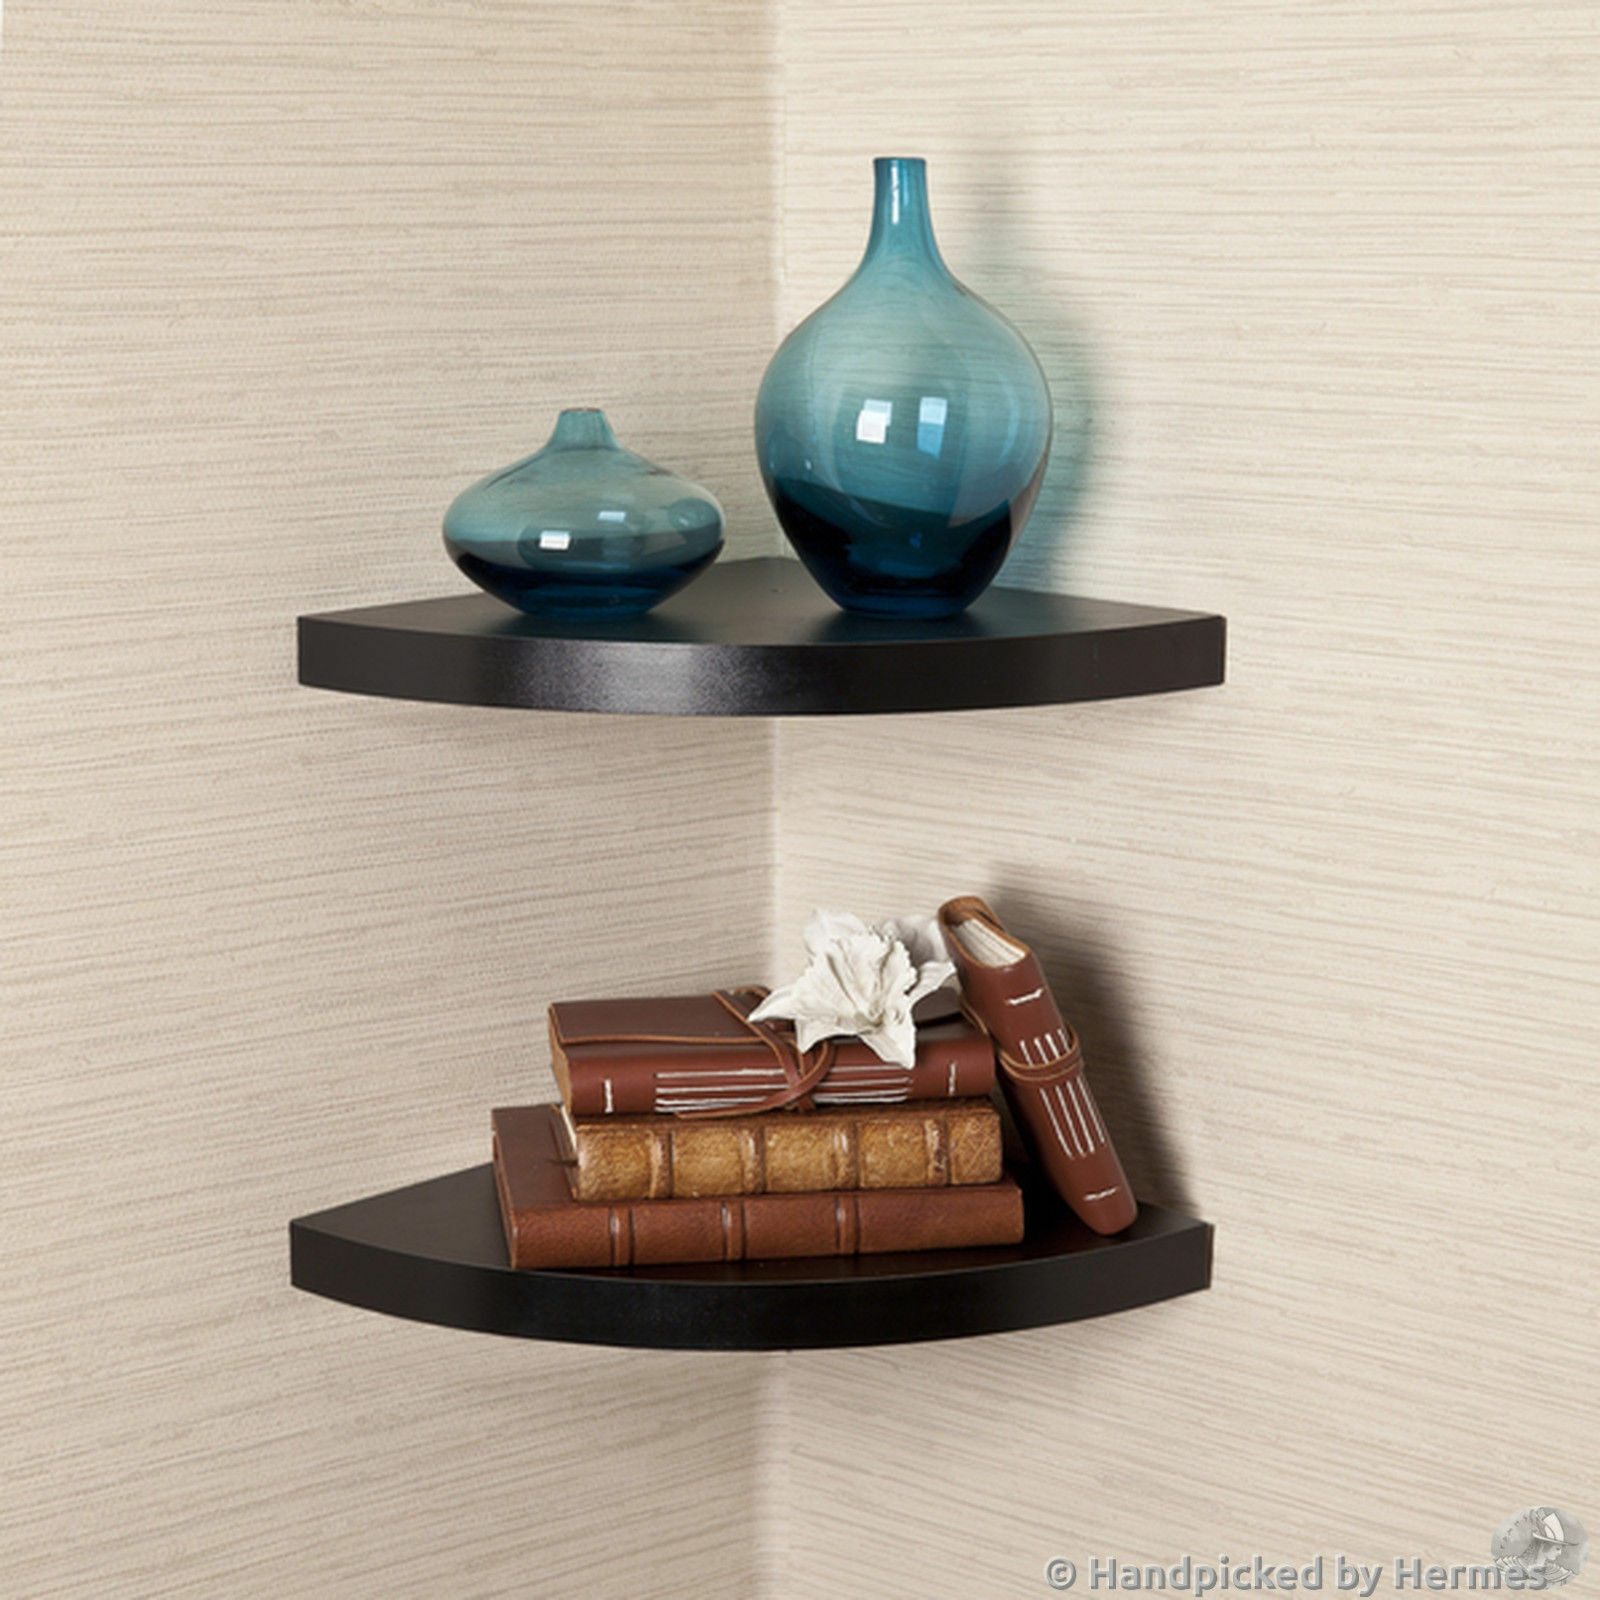 corner shelf units are helpful accessory pieces that convert unused ...